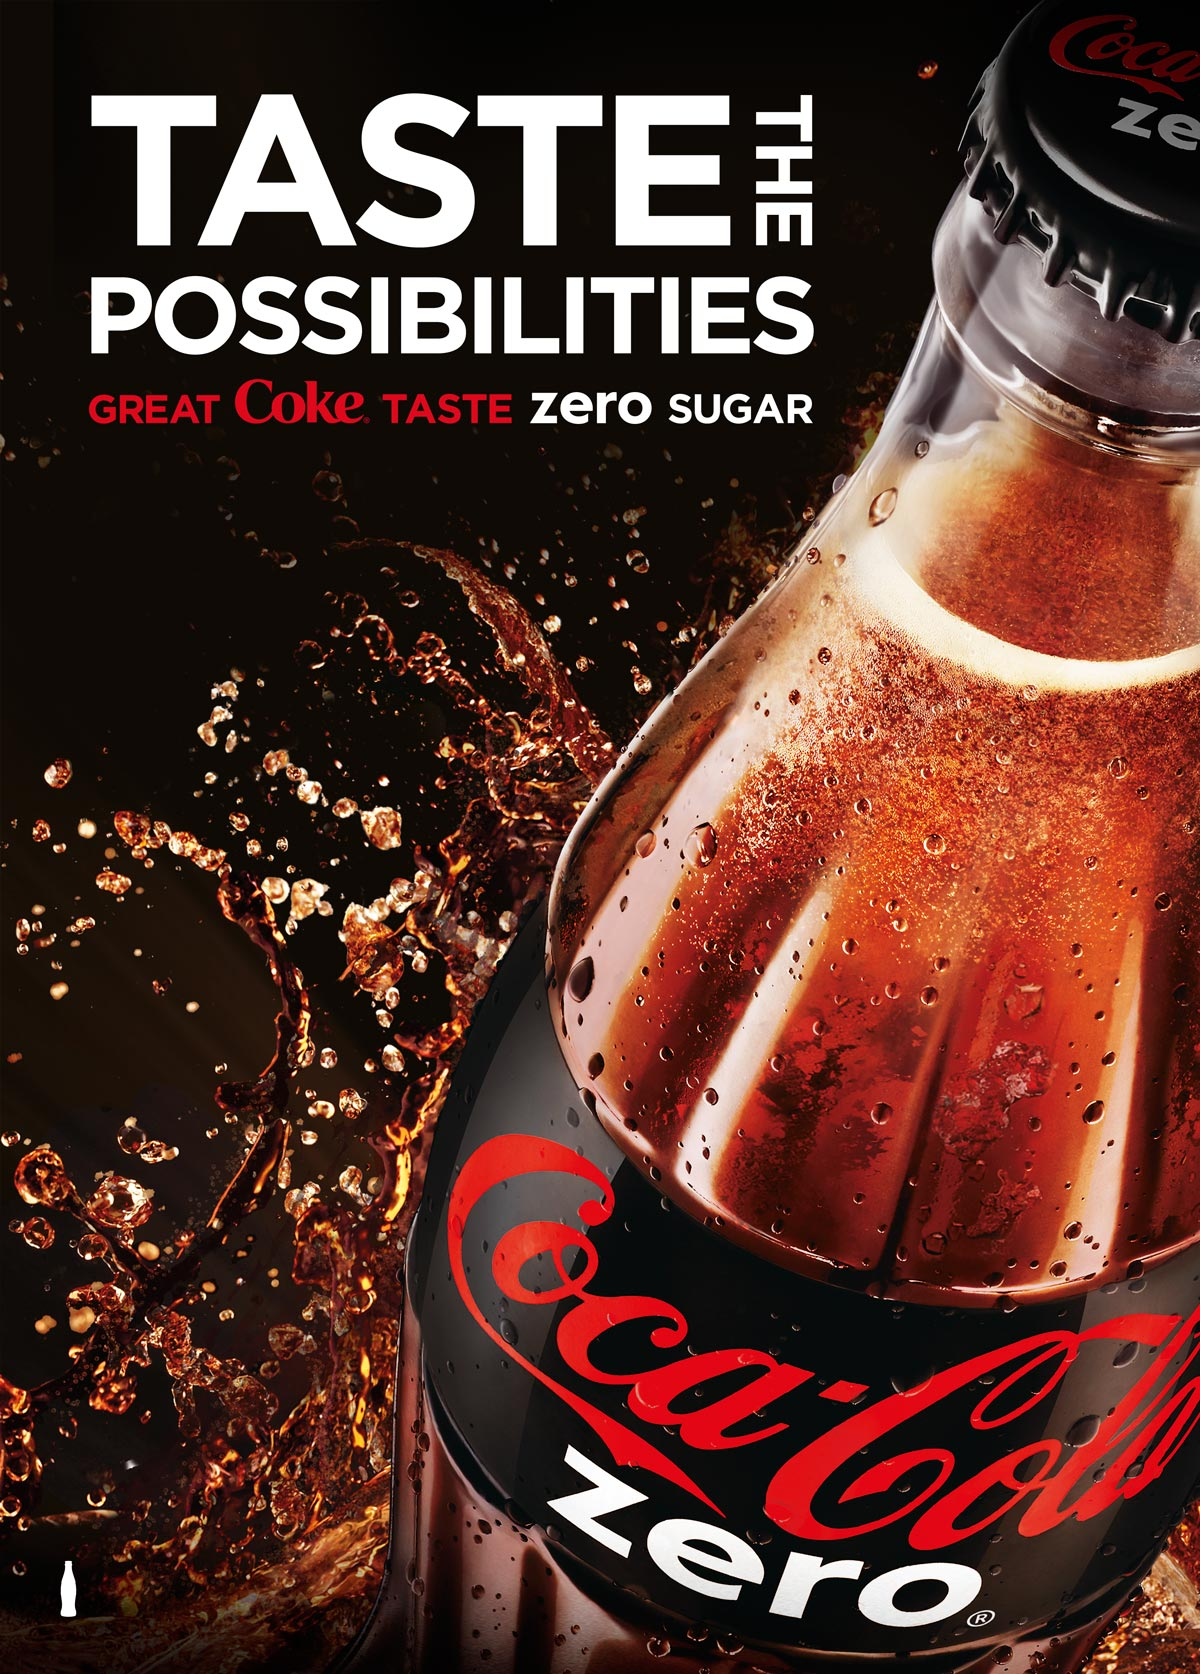 Coke Zero Advertising campaign key image